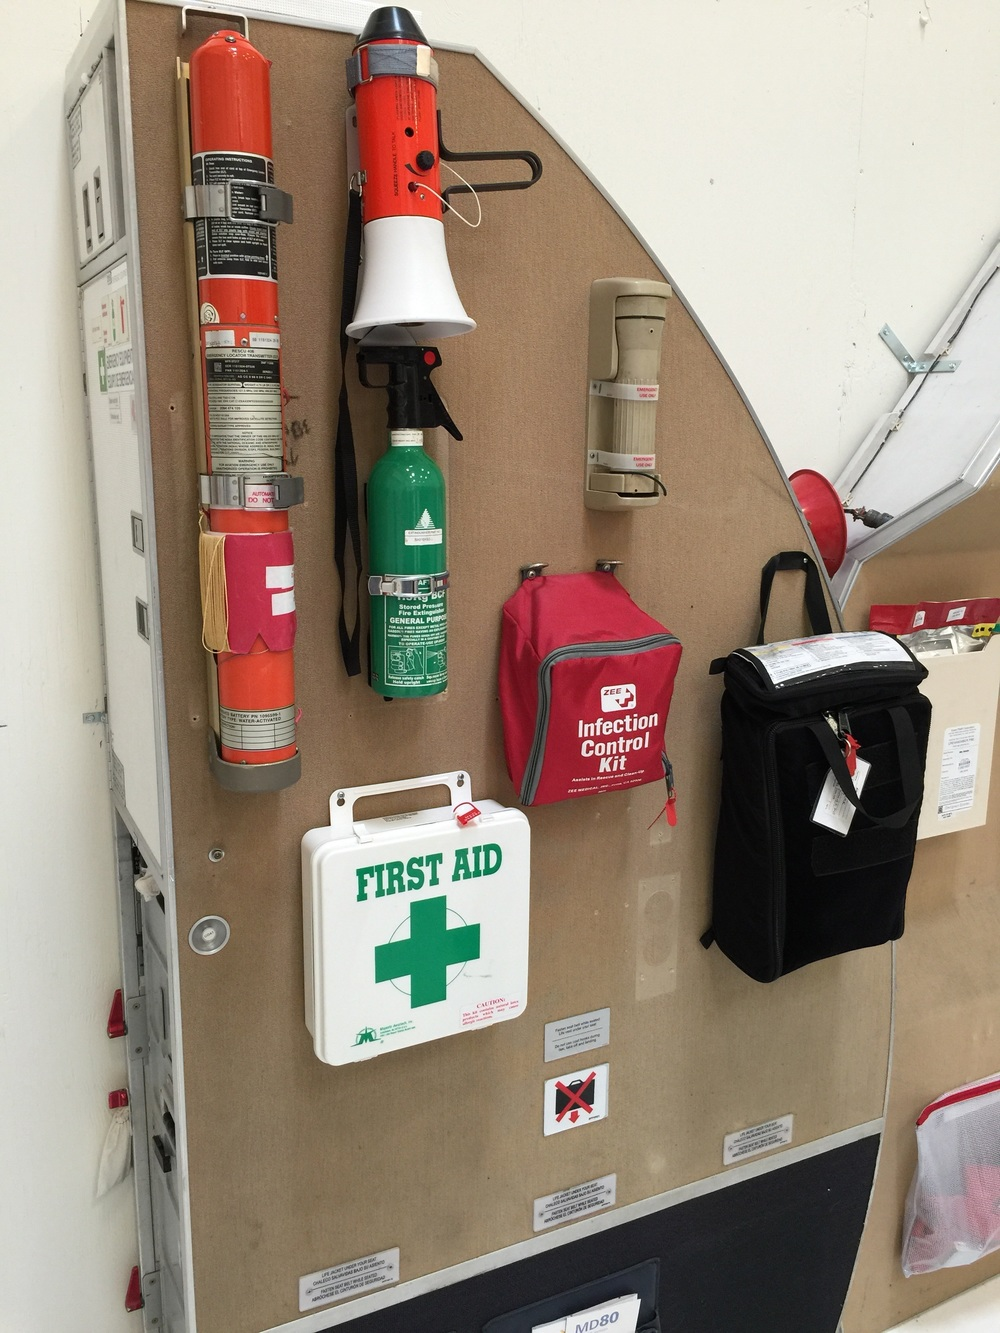 Here's a bunch of emergency equipment.